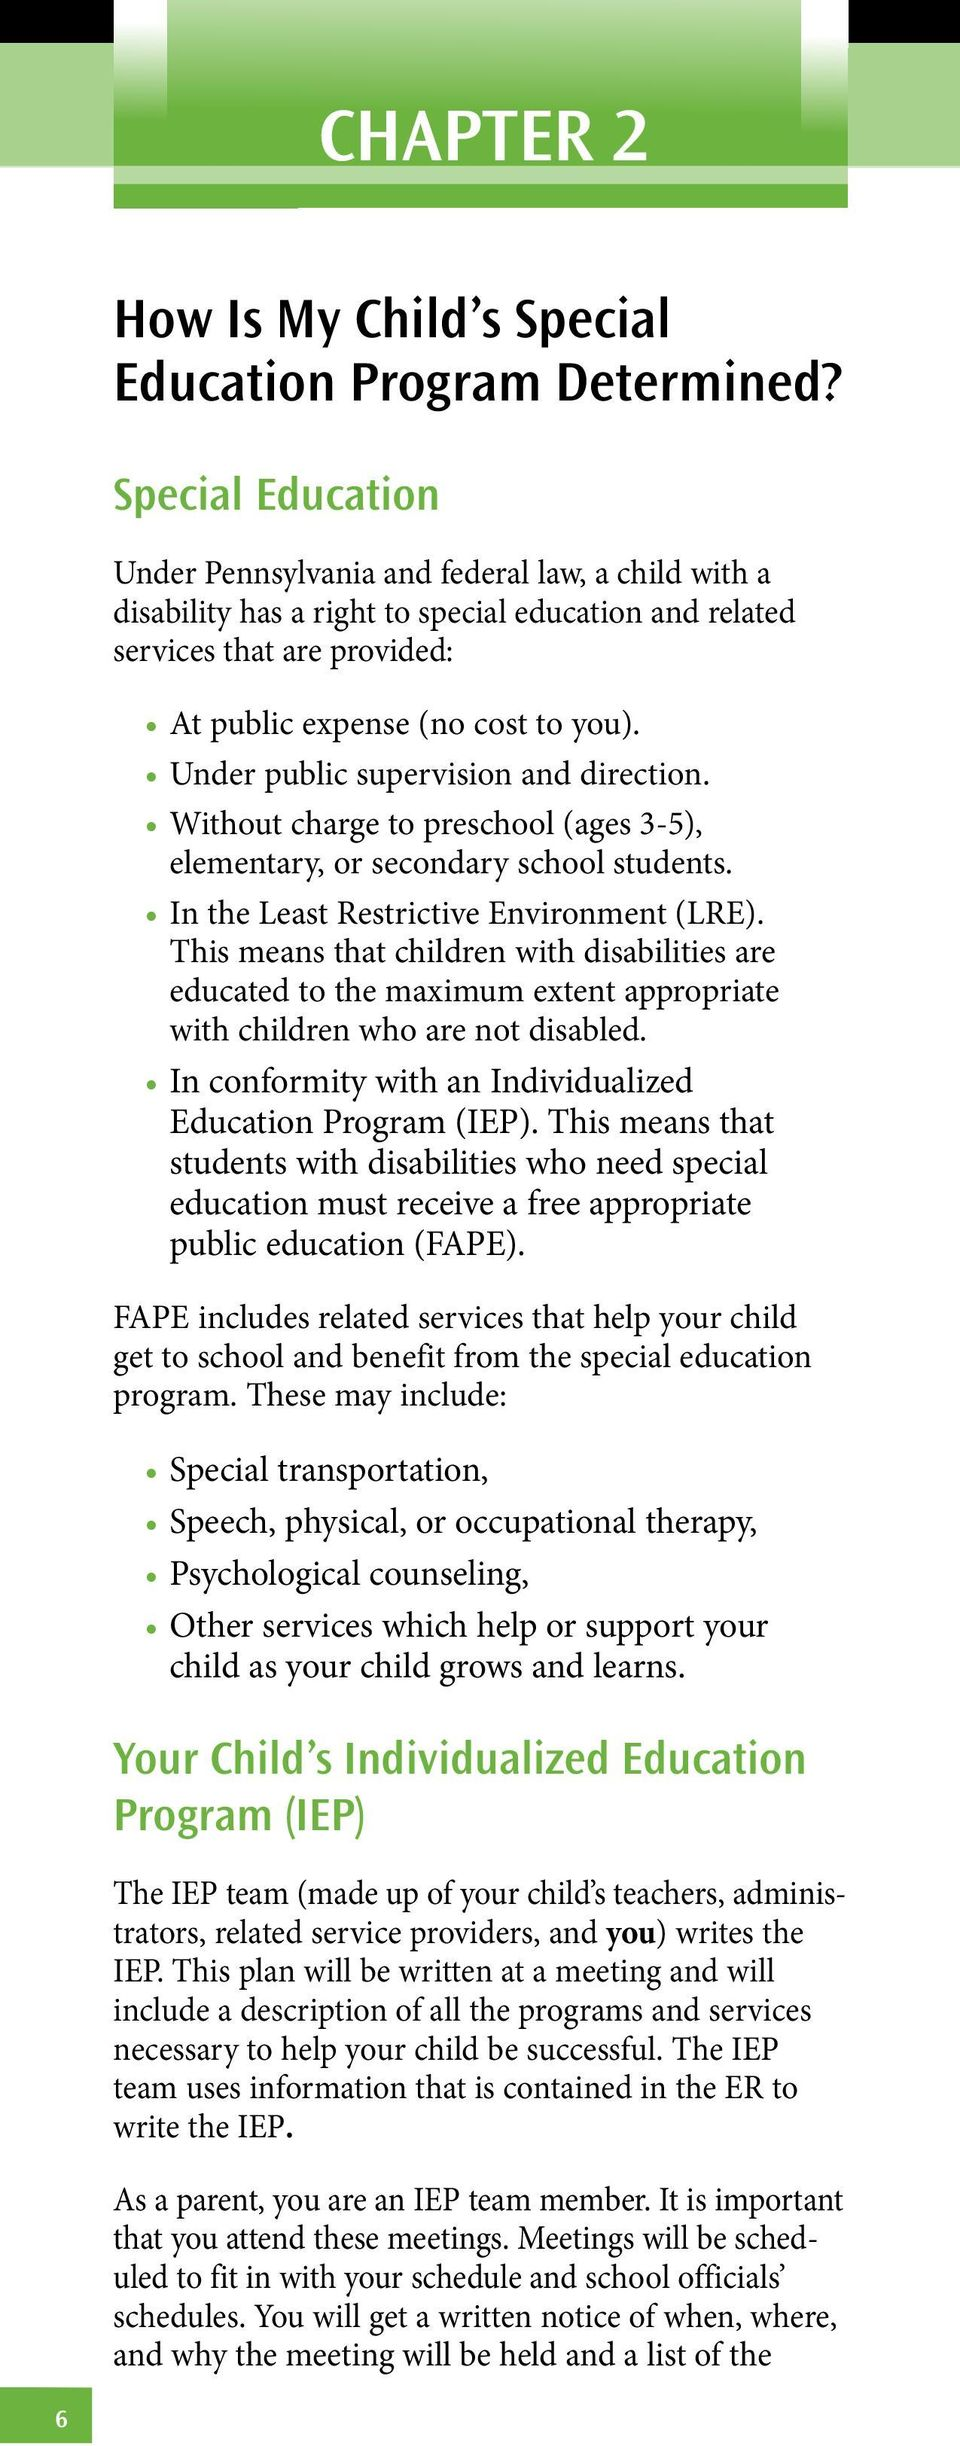 Under public supervision and direction. Without charge to preschool (ages 3-5), elementary, or secondary school students. In the Least Restrictive Environment (LRE).